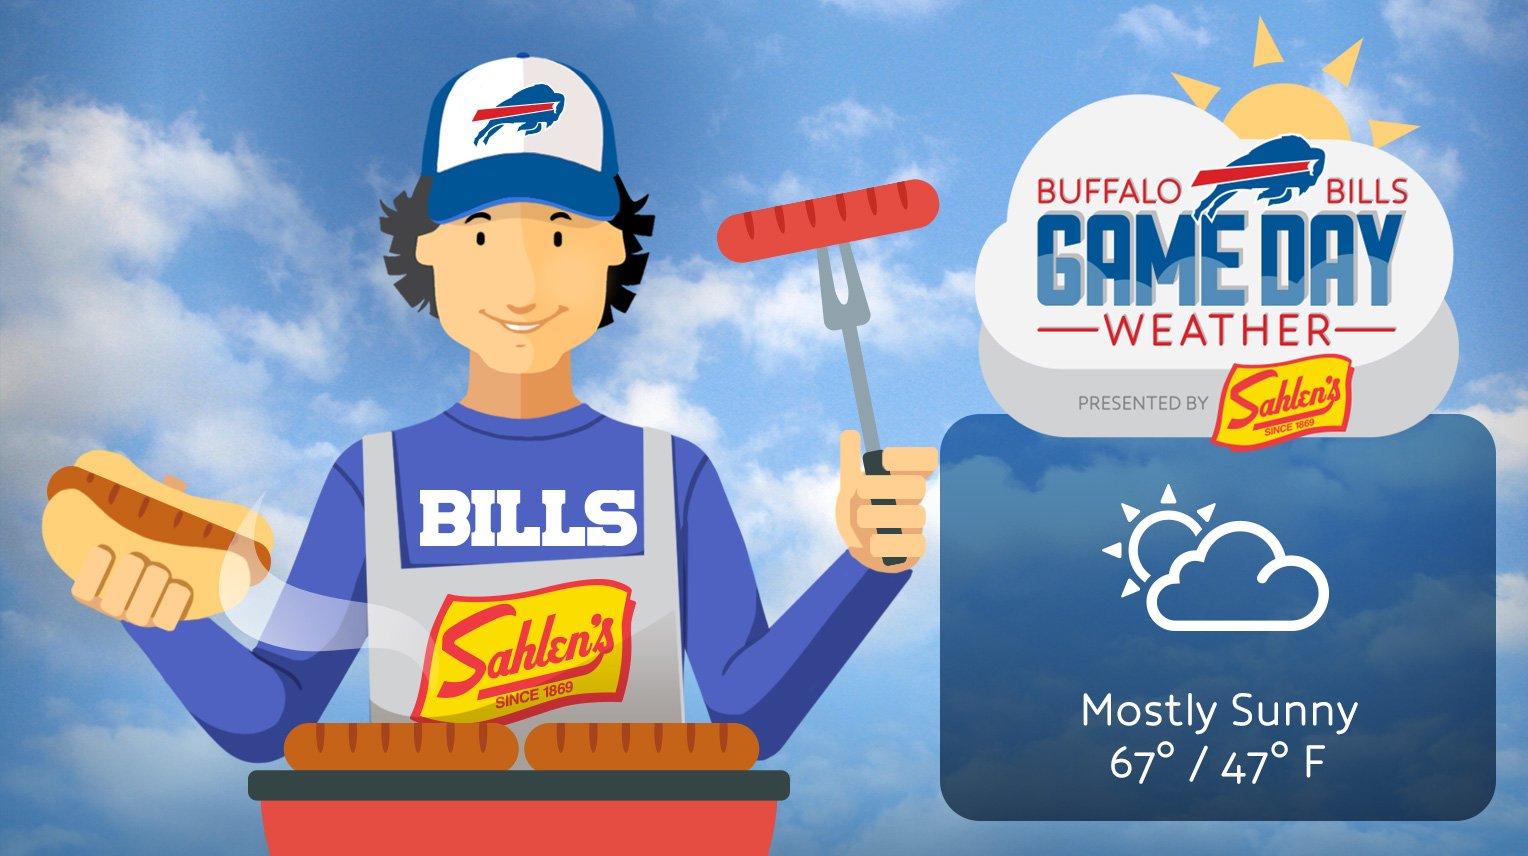 Tomorrow's forecast? Perfect fall weather with a 100% chance of football.  #NYJvsBUF #GoBills https://t.co/Tv7rMkxEk3